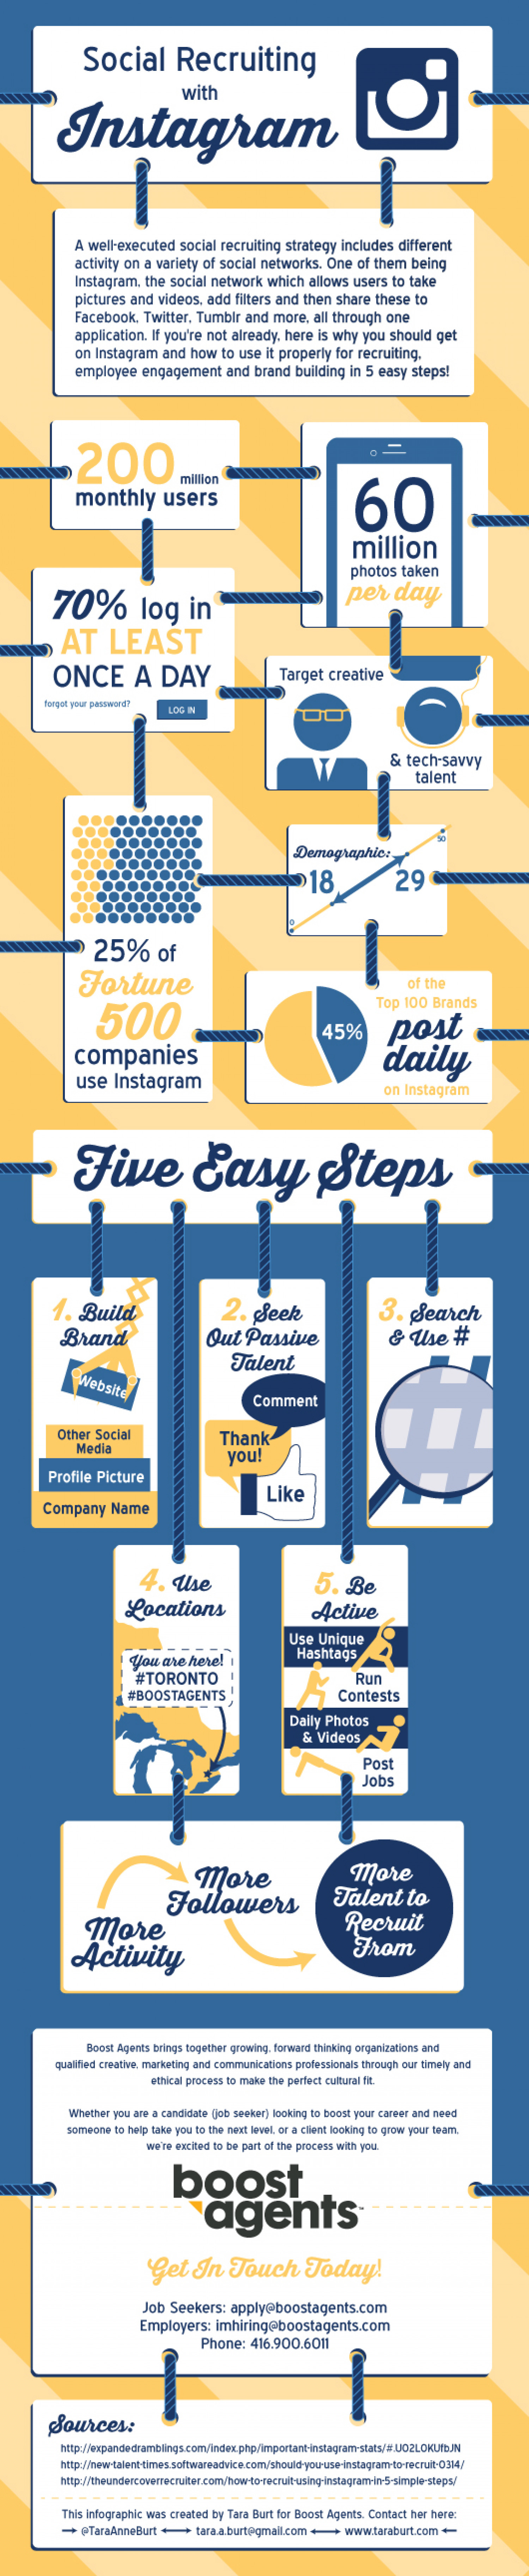 Social Recruiting with Instagram Infographic